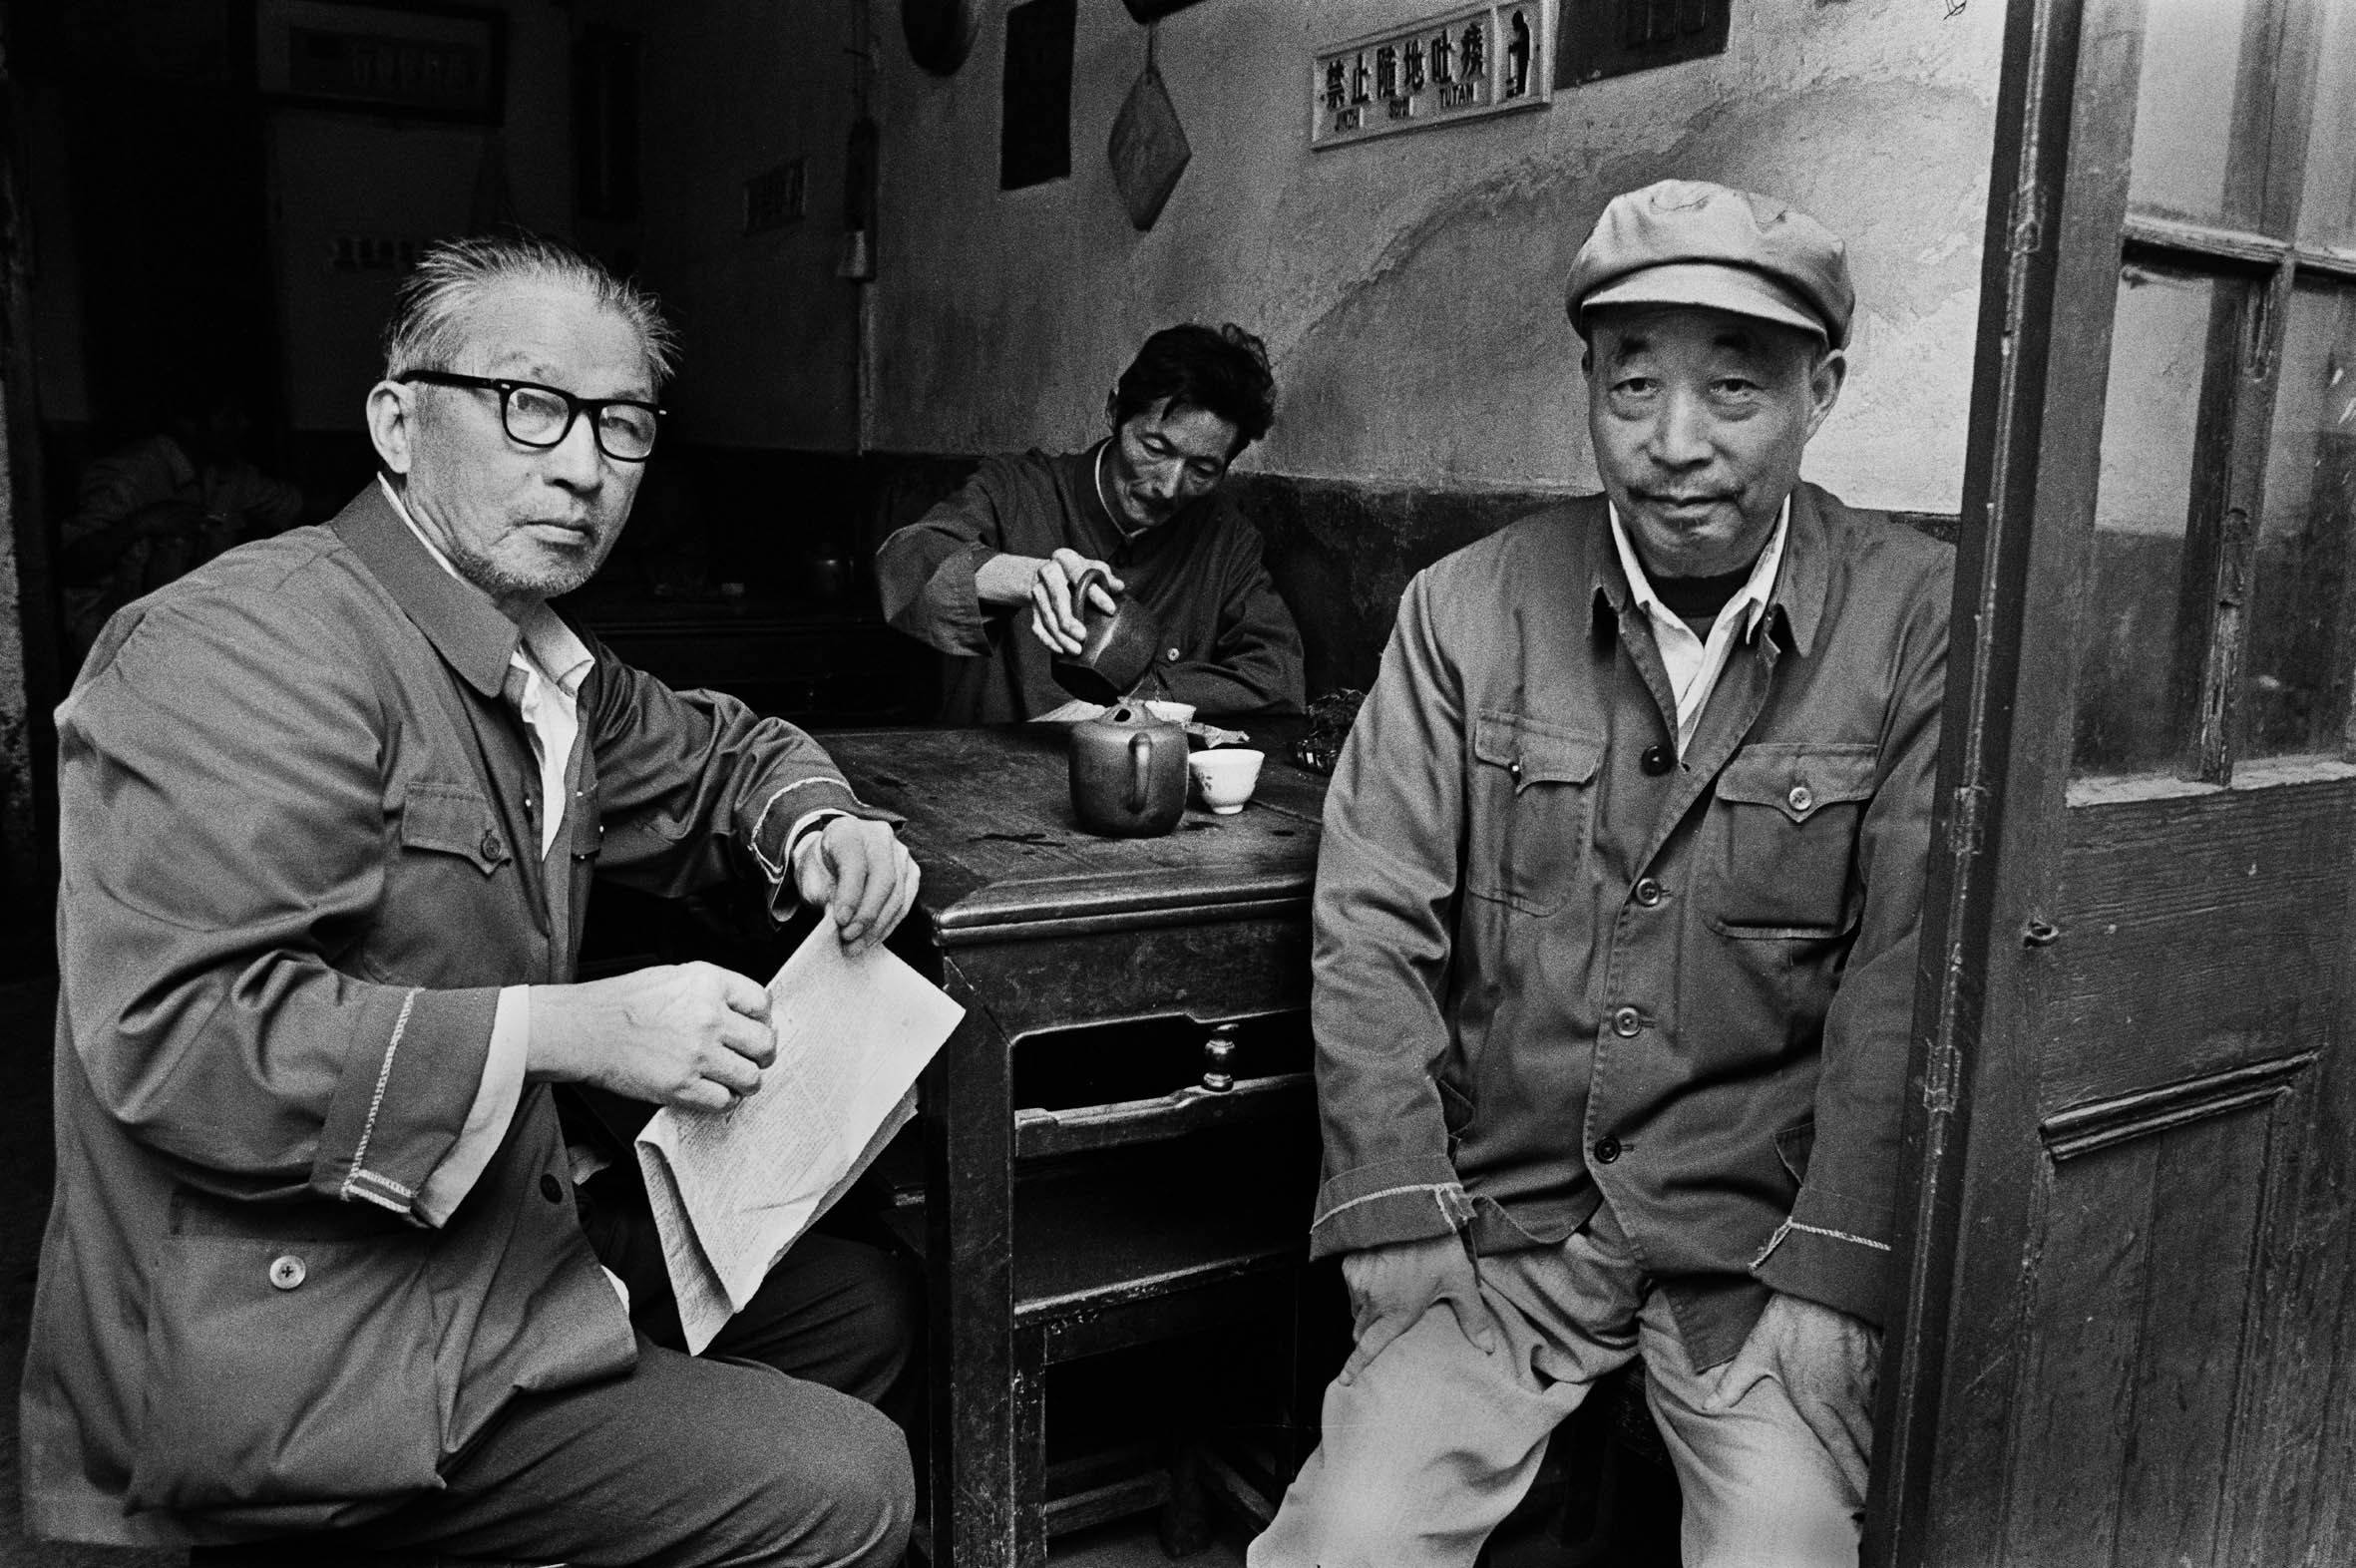 1shanghai_1987_film_15_p34_copy